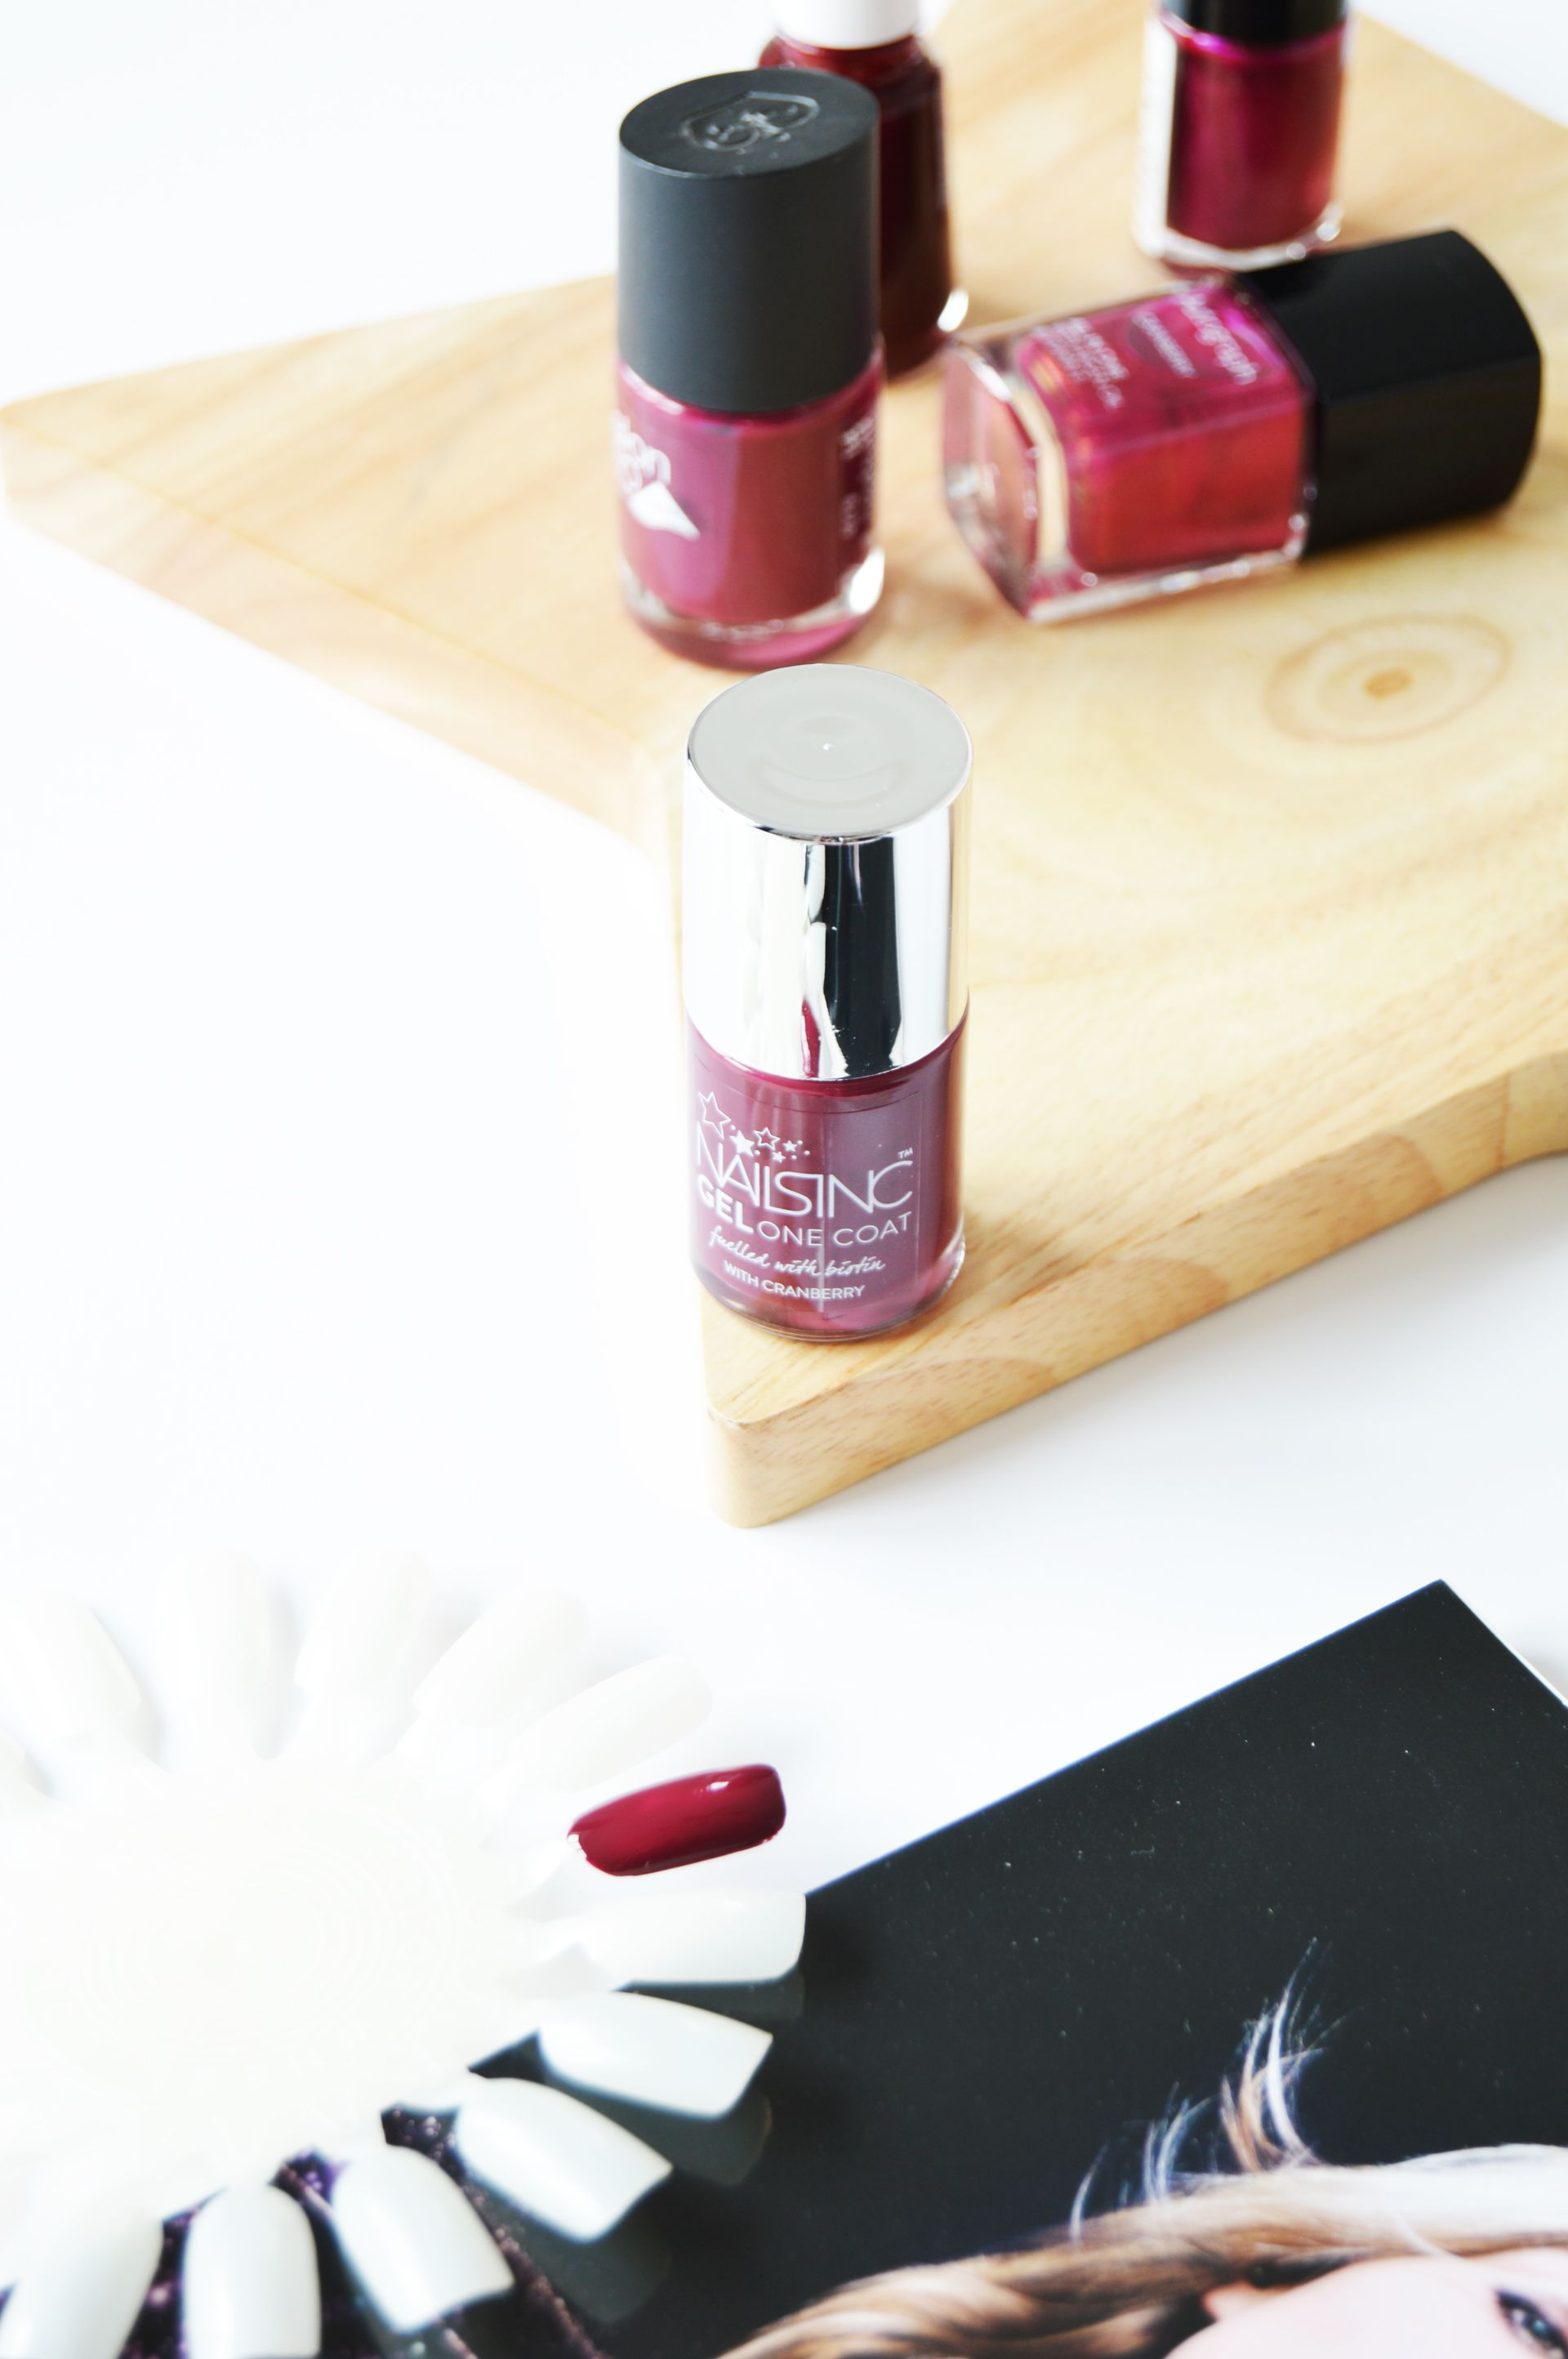 Nails Inc Gel One Coat Nail Polish Piccadilly Court is a dark burgundy nail polish which is perfect for a&w seasons. INails Inc Gel One Coat Nail Polish claims to be high shine and long lasting nail polish, is it really like that?